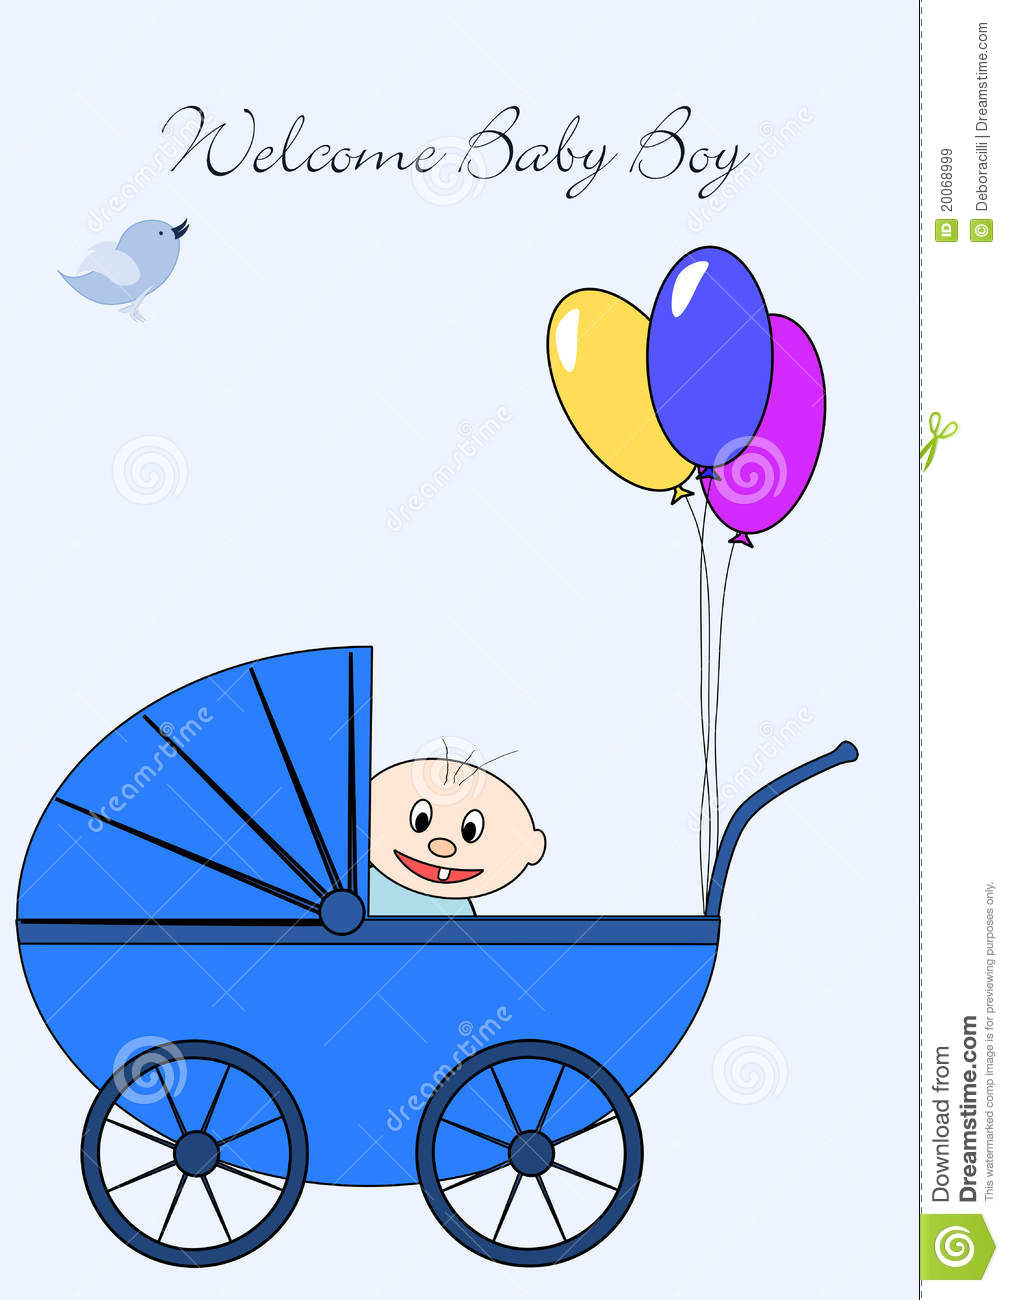 Welcome Baby Boy Royalty Free Stock Images  Image: 20068999